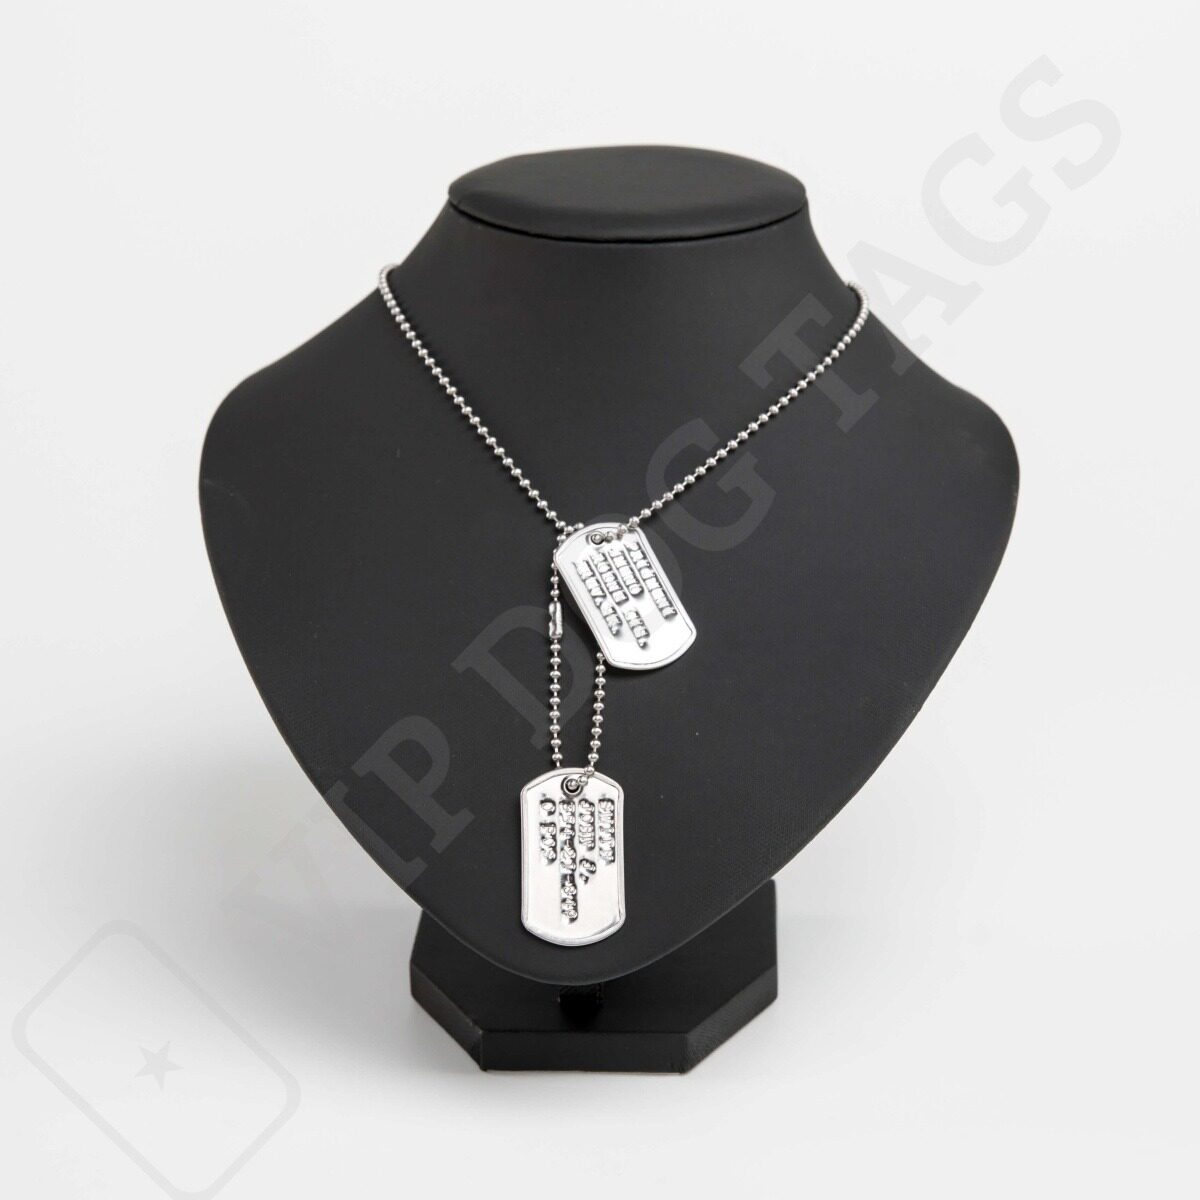 Original US Dog tags Mini